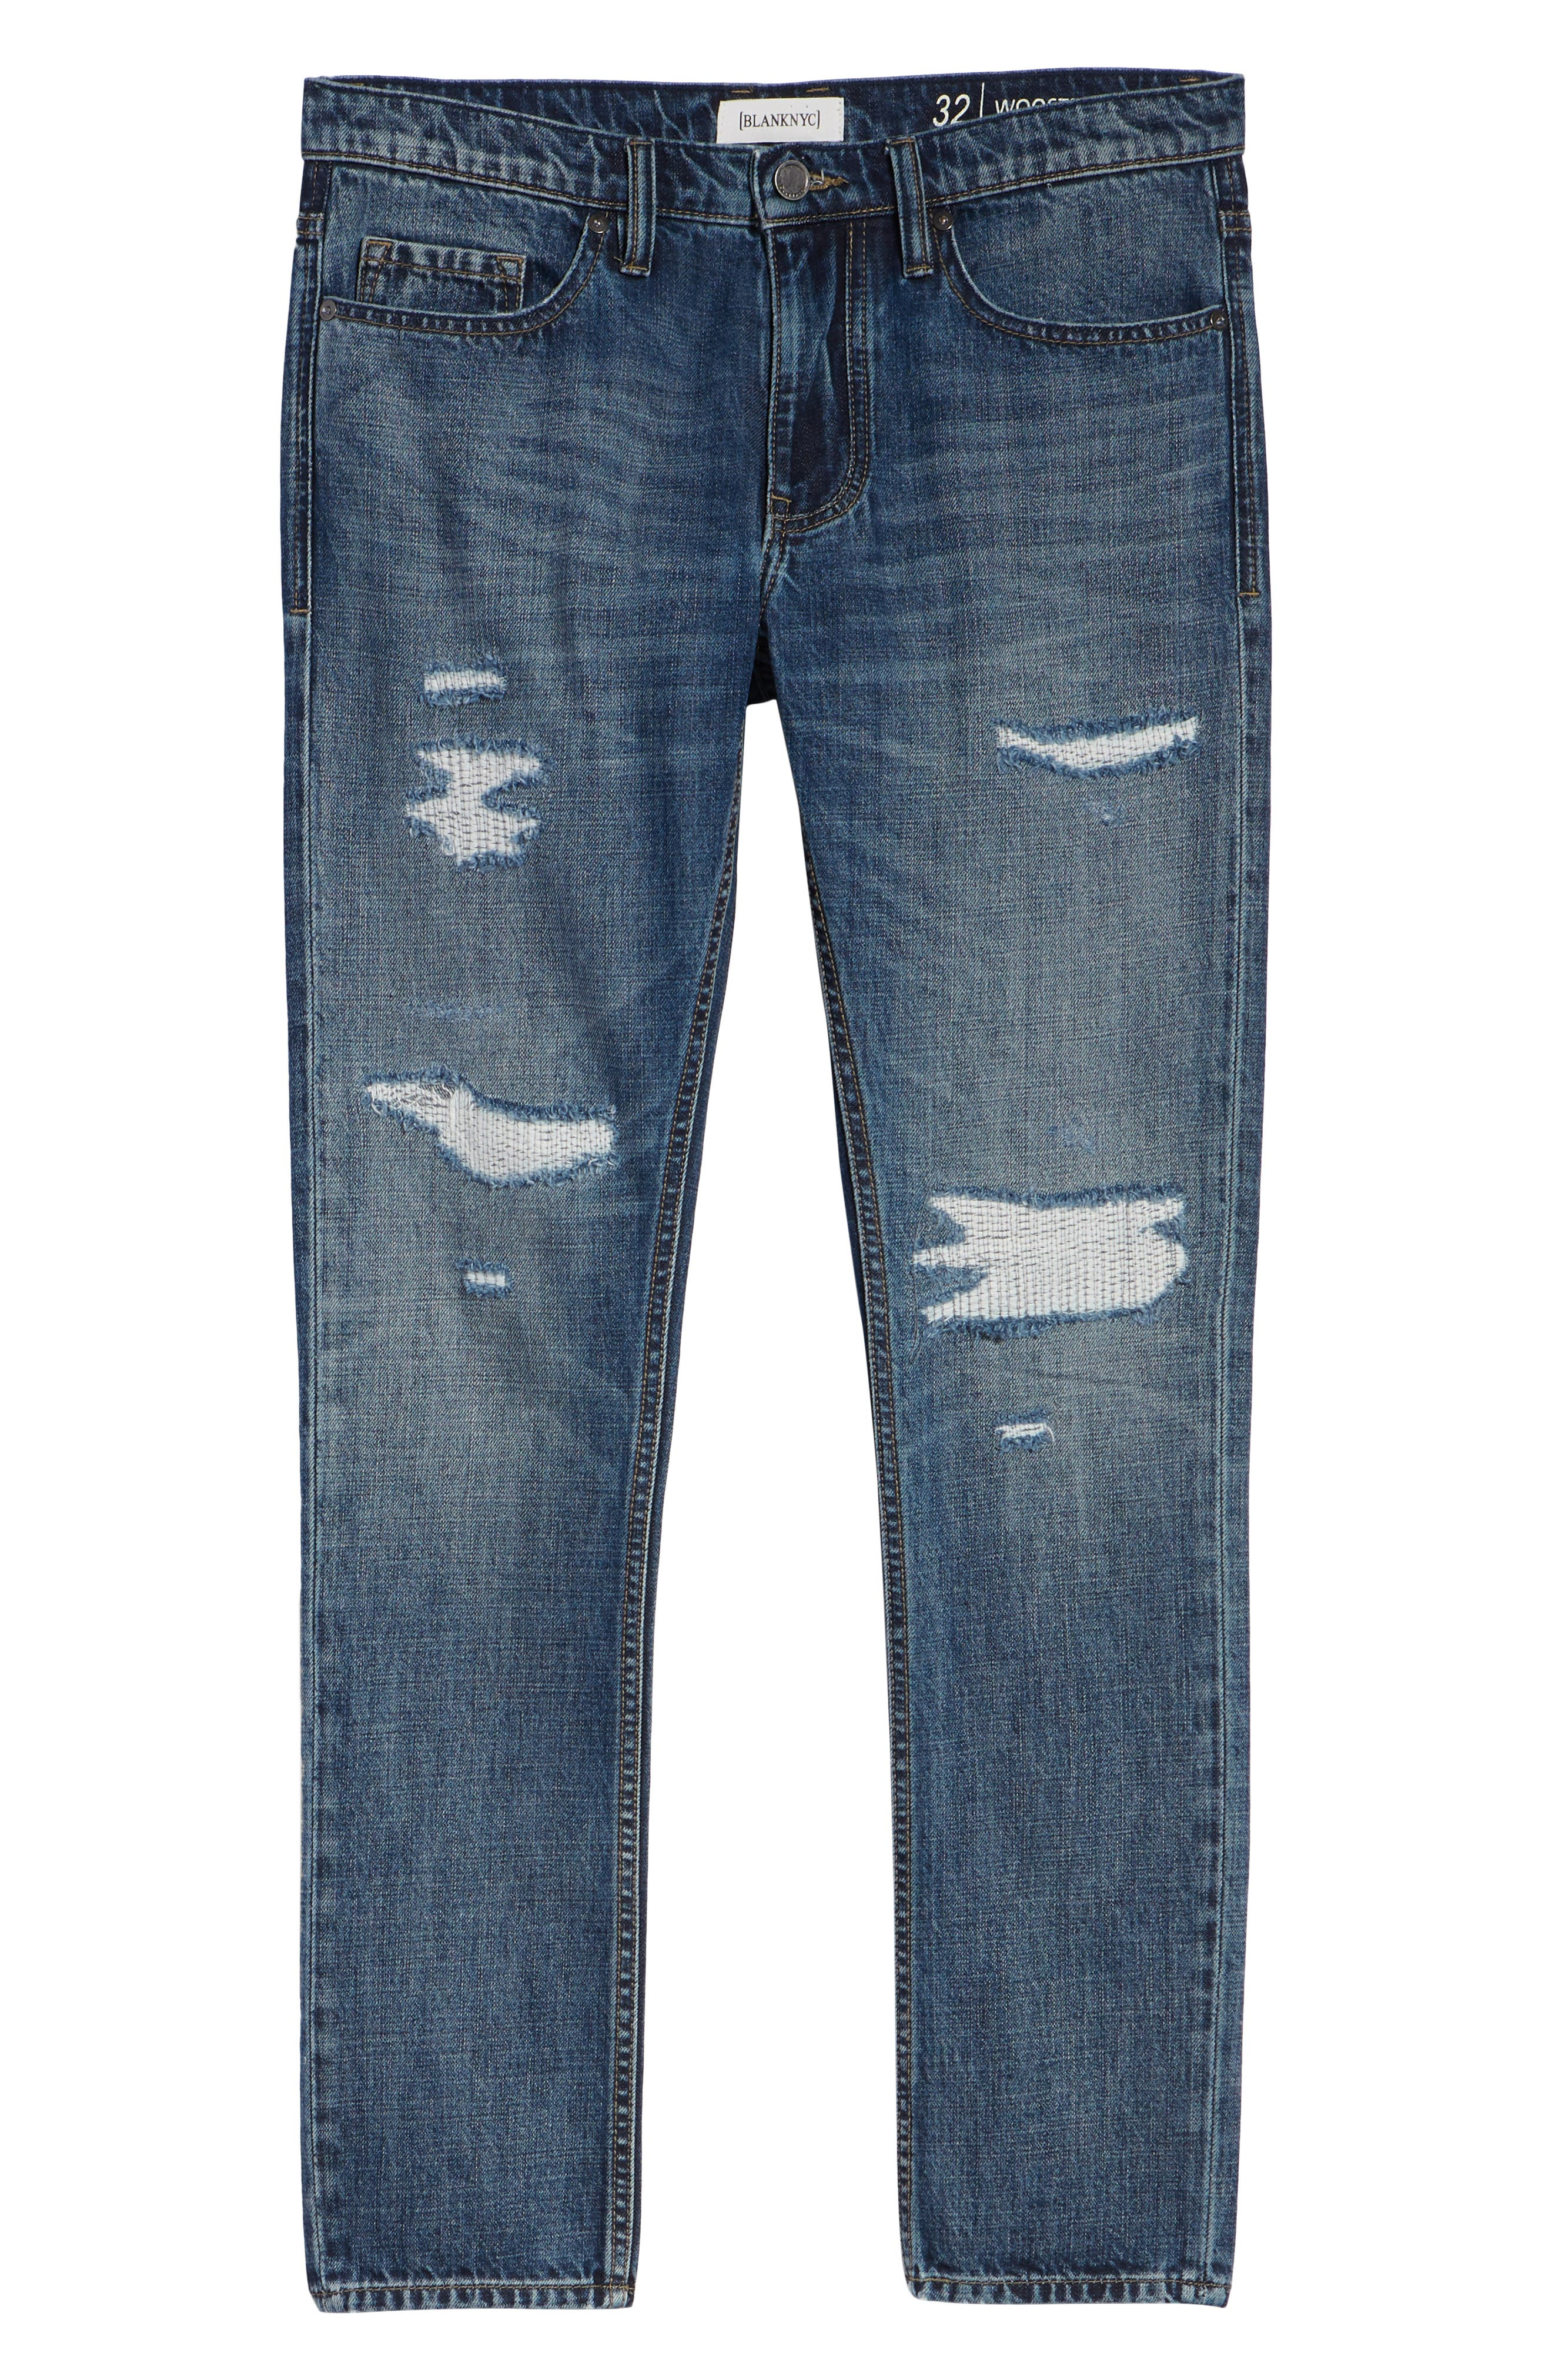 Wooster Slim Fit Distressed Selvedge Jeans,                             Alternate thumbnail 6, color,                             PERMISSIBLE HOT